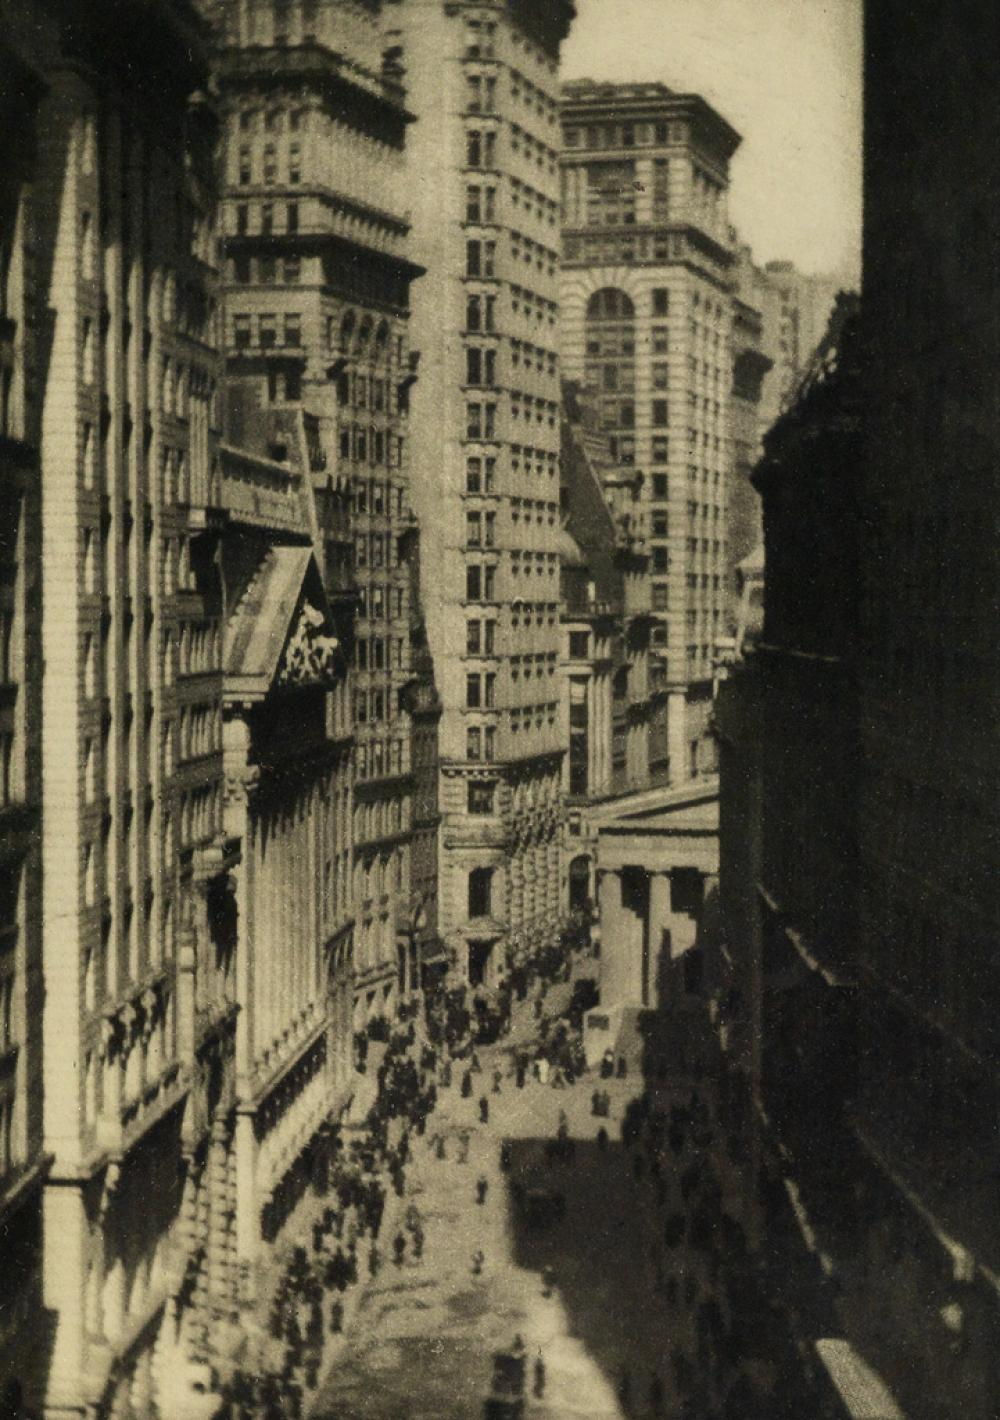 ALVIN LANGDON COBURN (1882-1966) The Bridge--Sunlight, New York * The Singer Building * The Holland House * Wall Street.